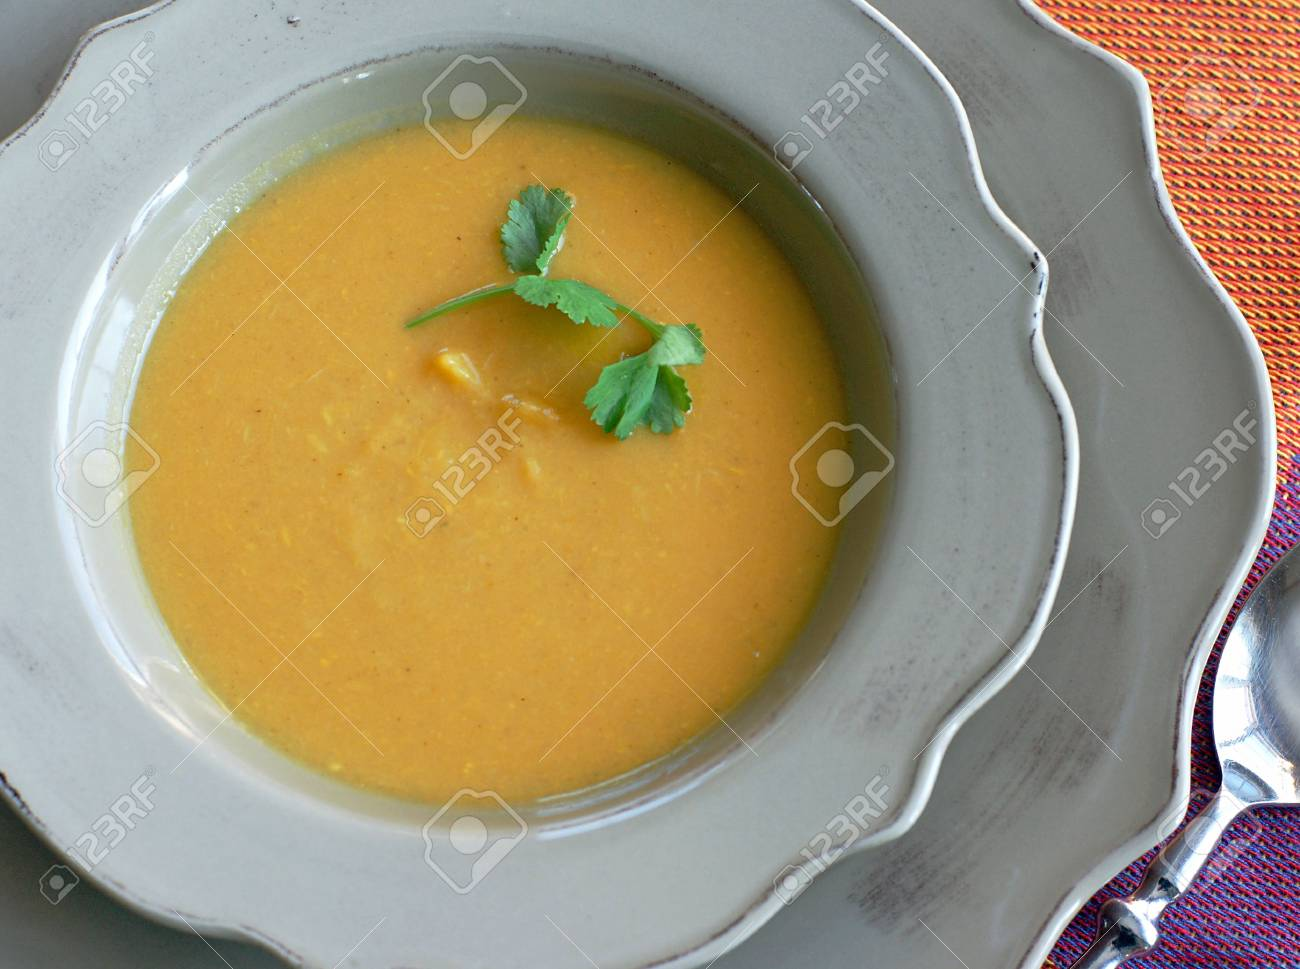 Curried Sweet Potato and Apple soup satisfies an appetite and provides an important source of antioxidants for optimum health and wellness - 4294848